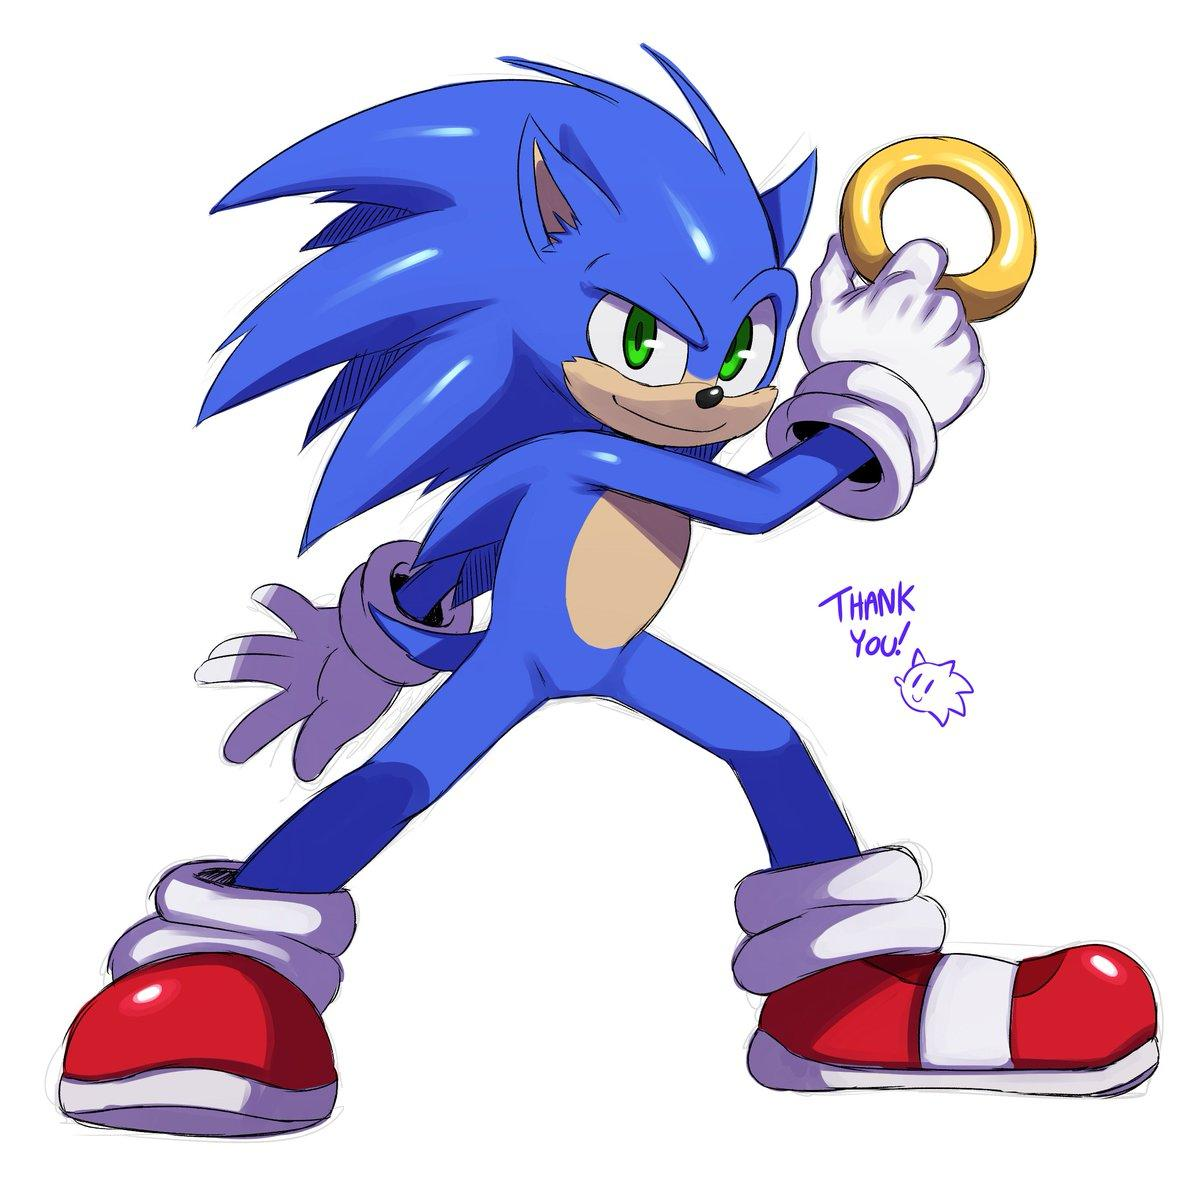 The New Design For Sonic Is Really Cool Sonic The Hedgehog 2020 Film Know Your Meme